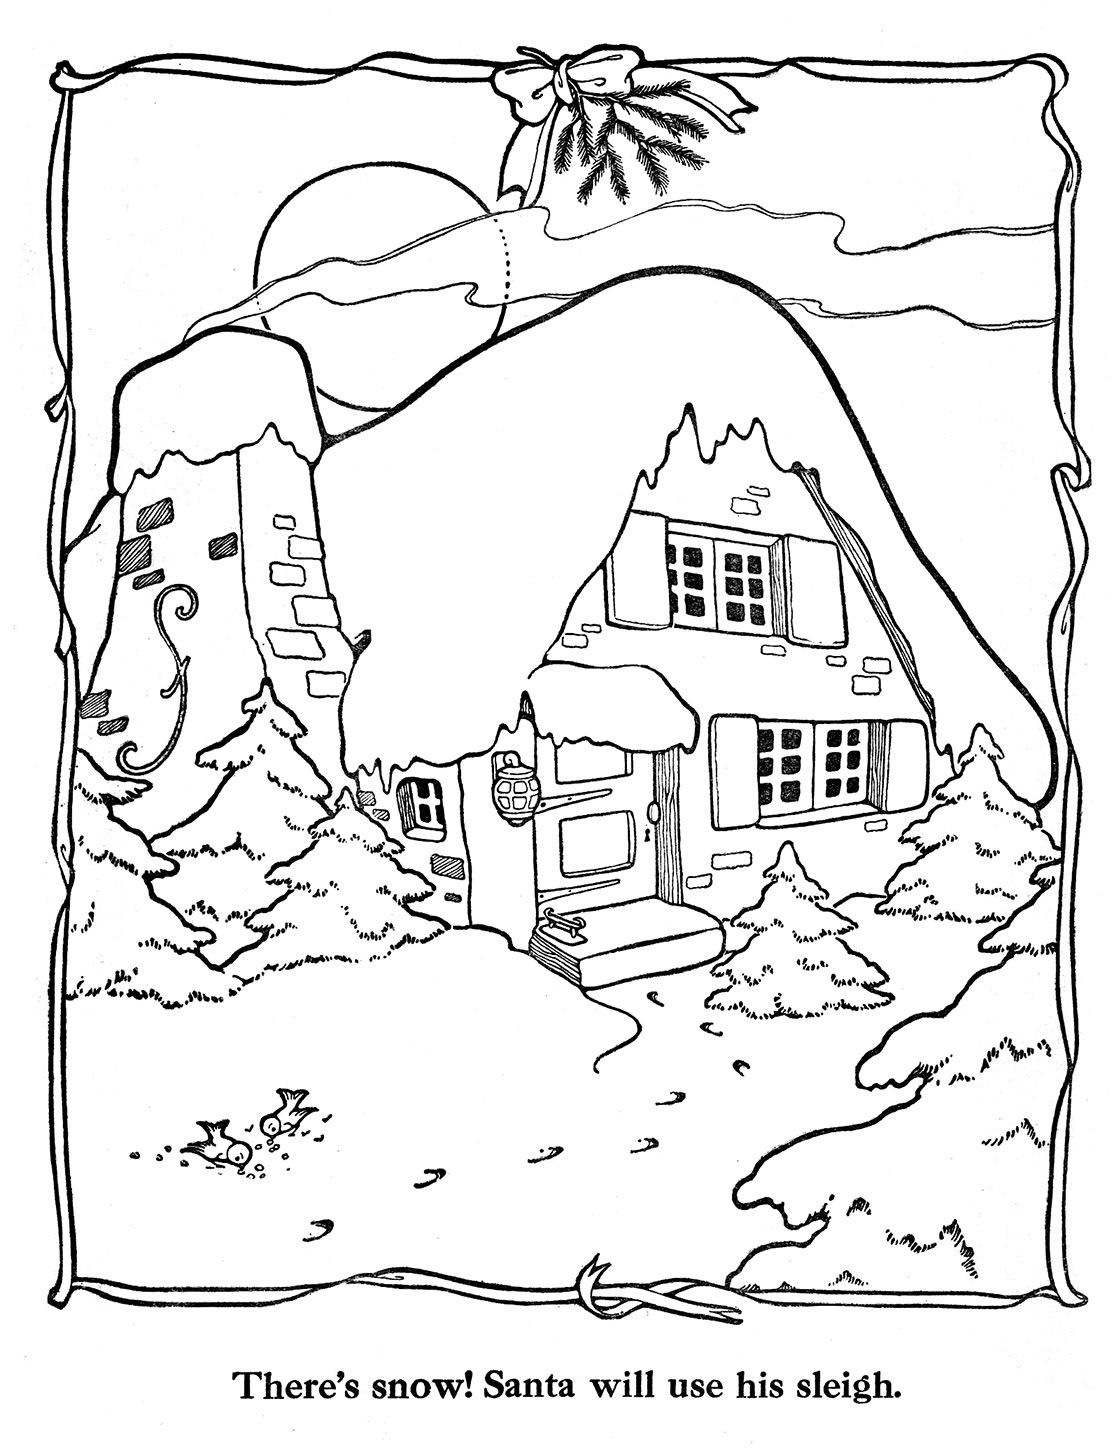 Coloring pictures merry christmas - Merry Christmas Paint Book 11